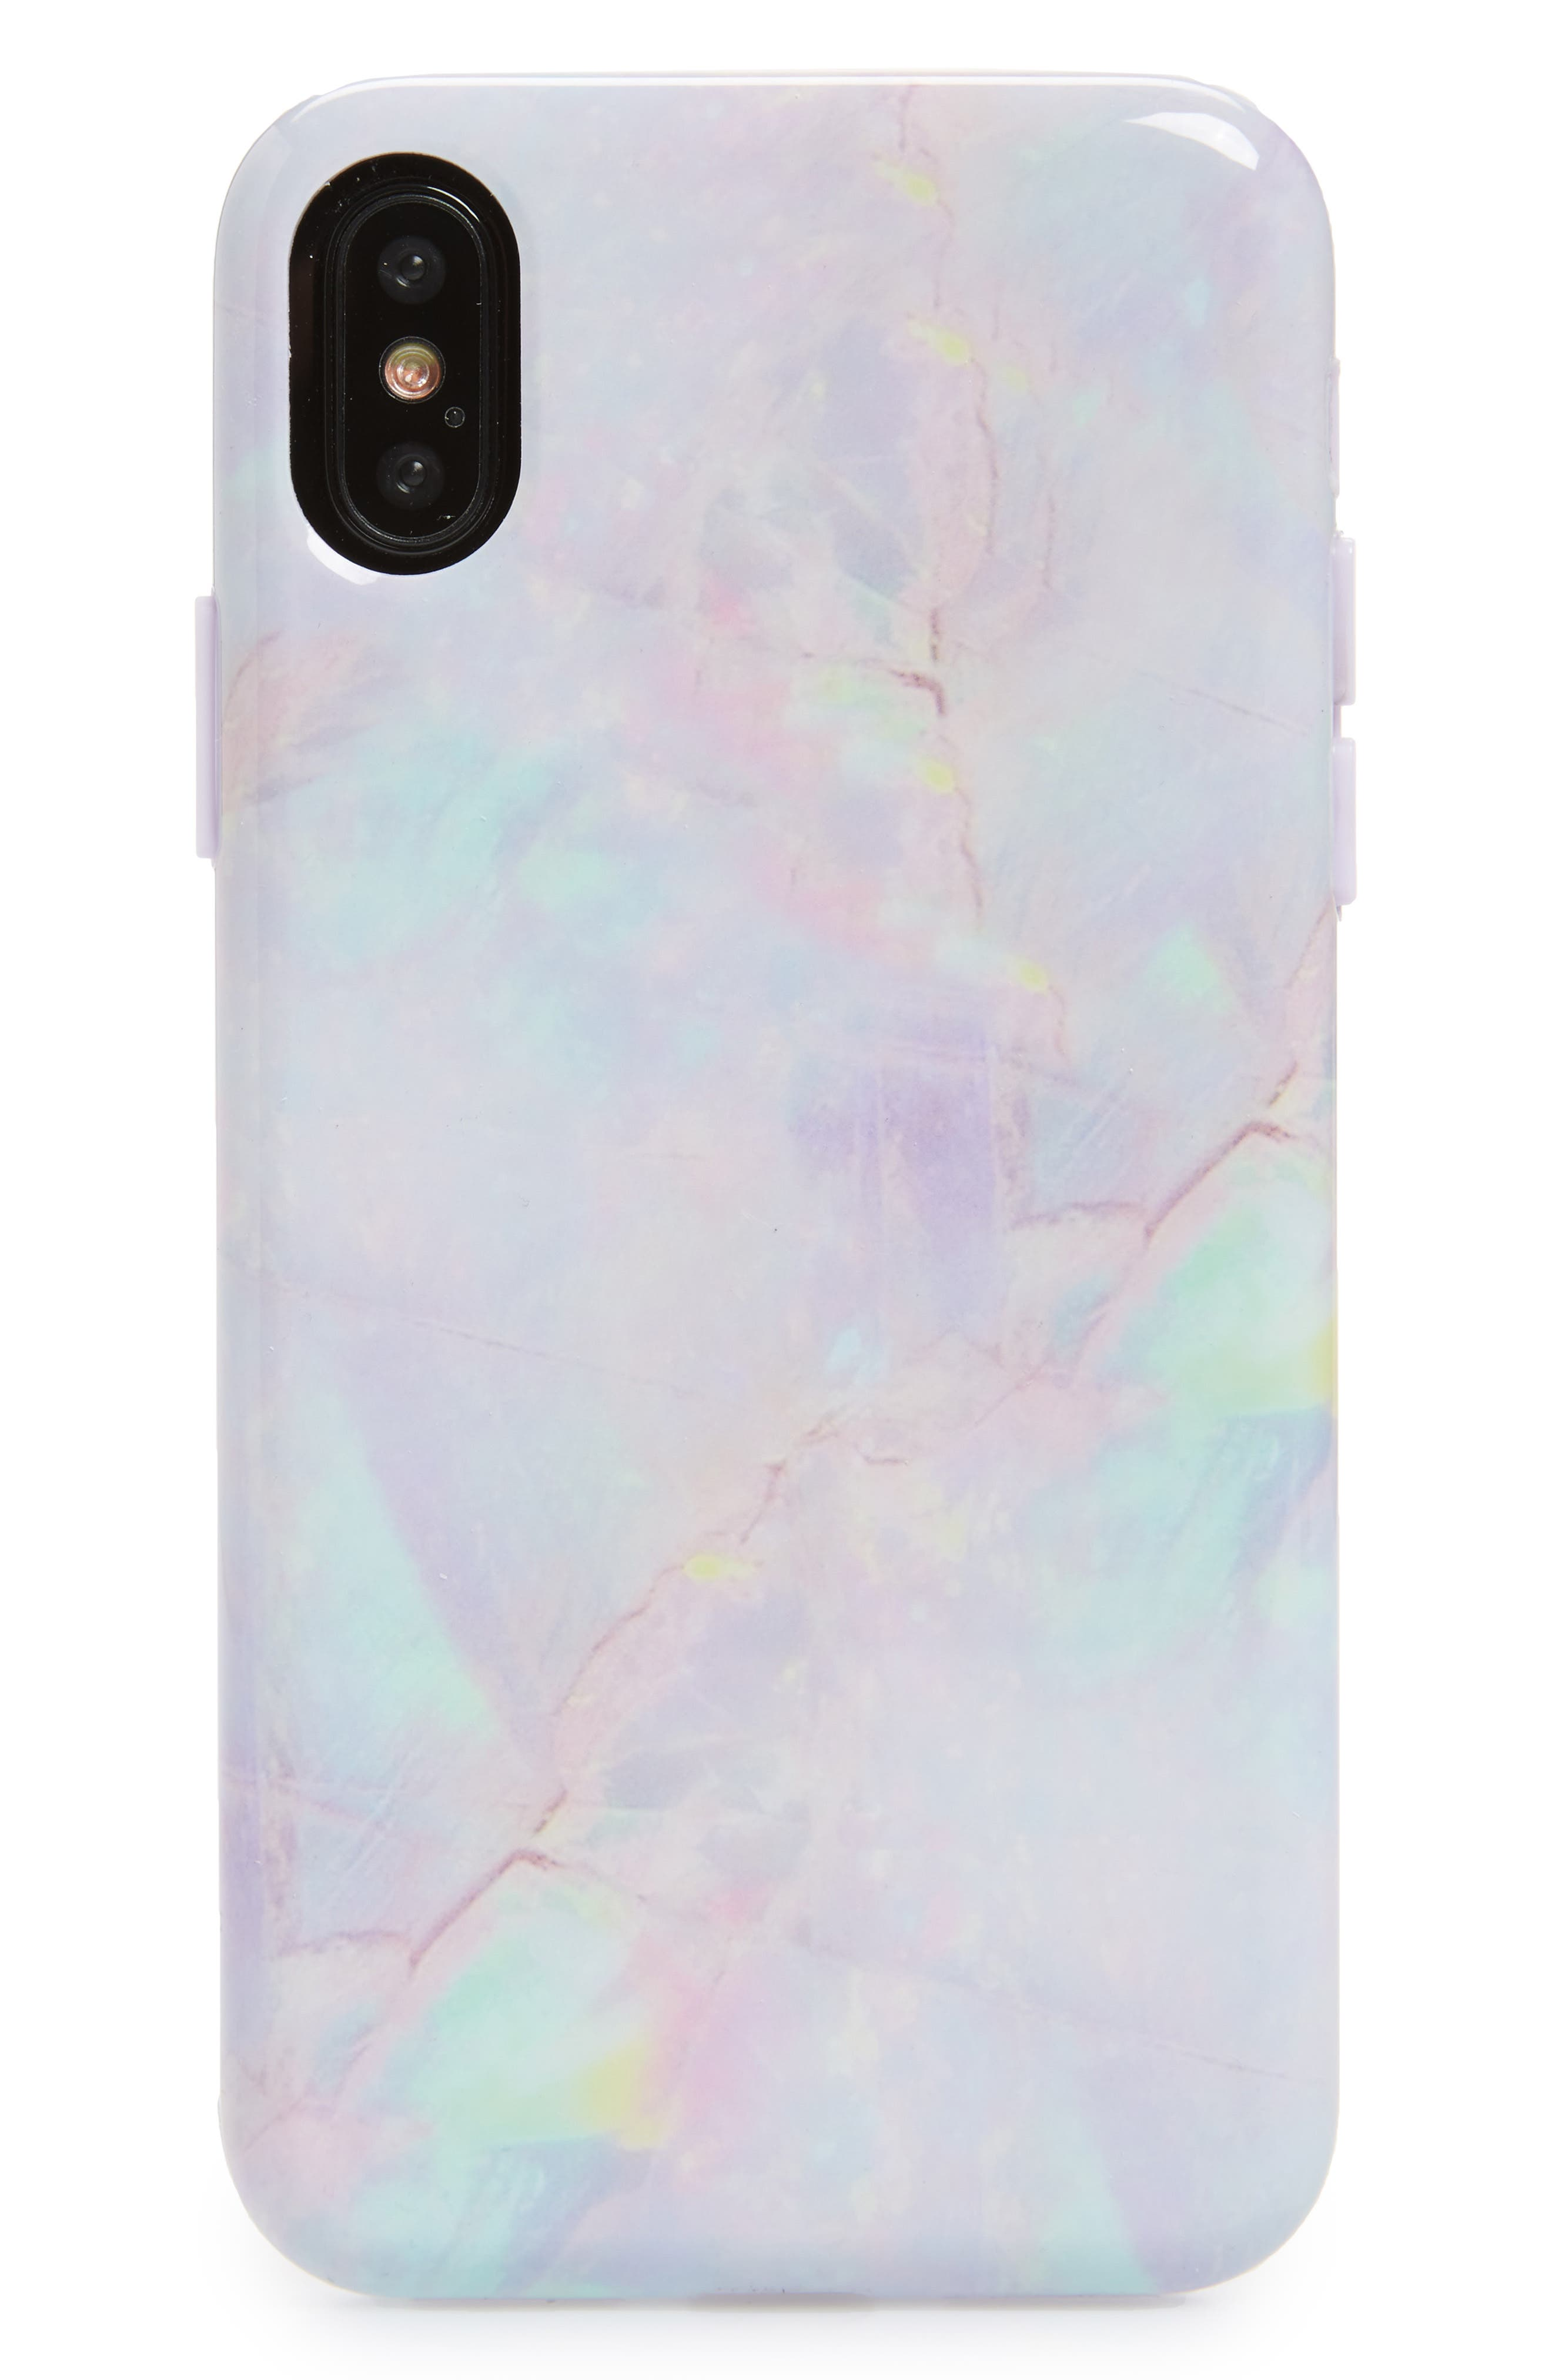 Velvet Caviar Cotton Candy Marble iPhone X Case